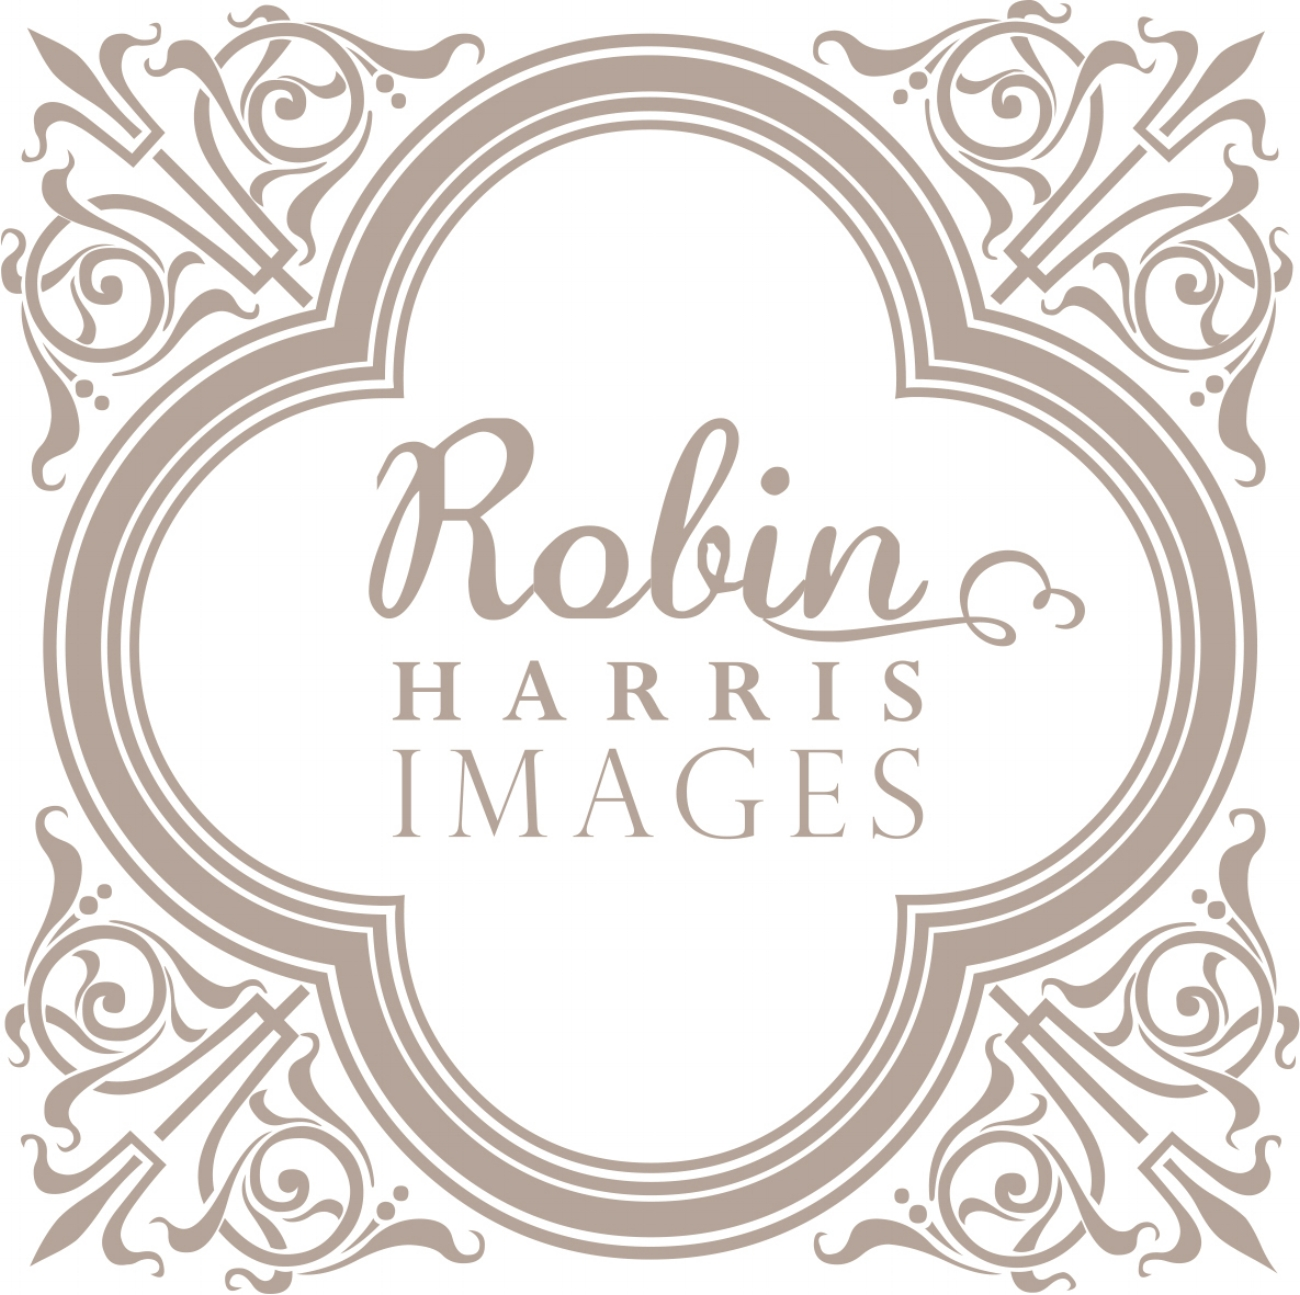 Robin Harris Images